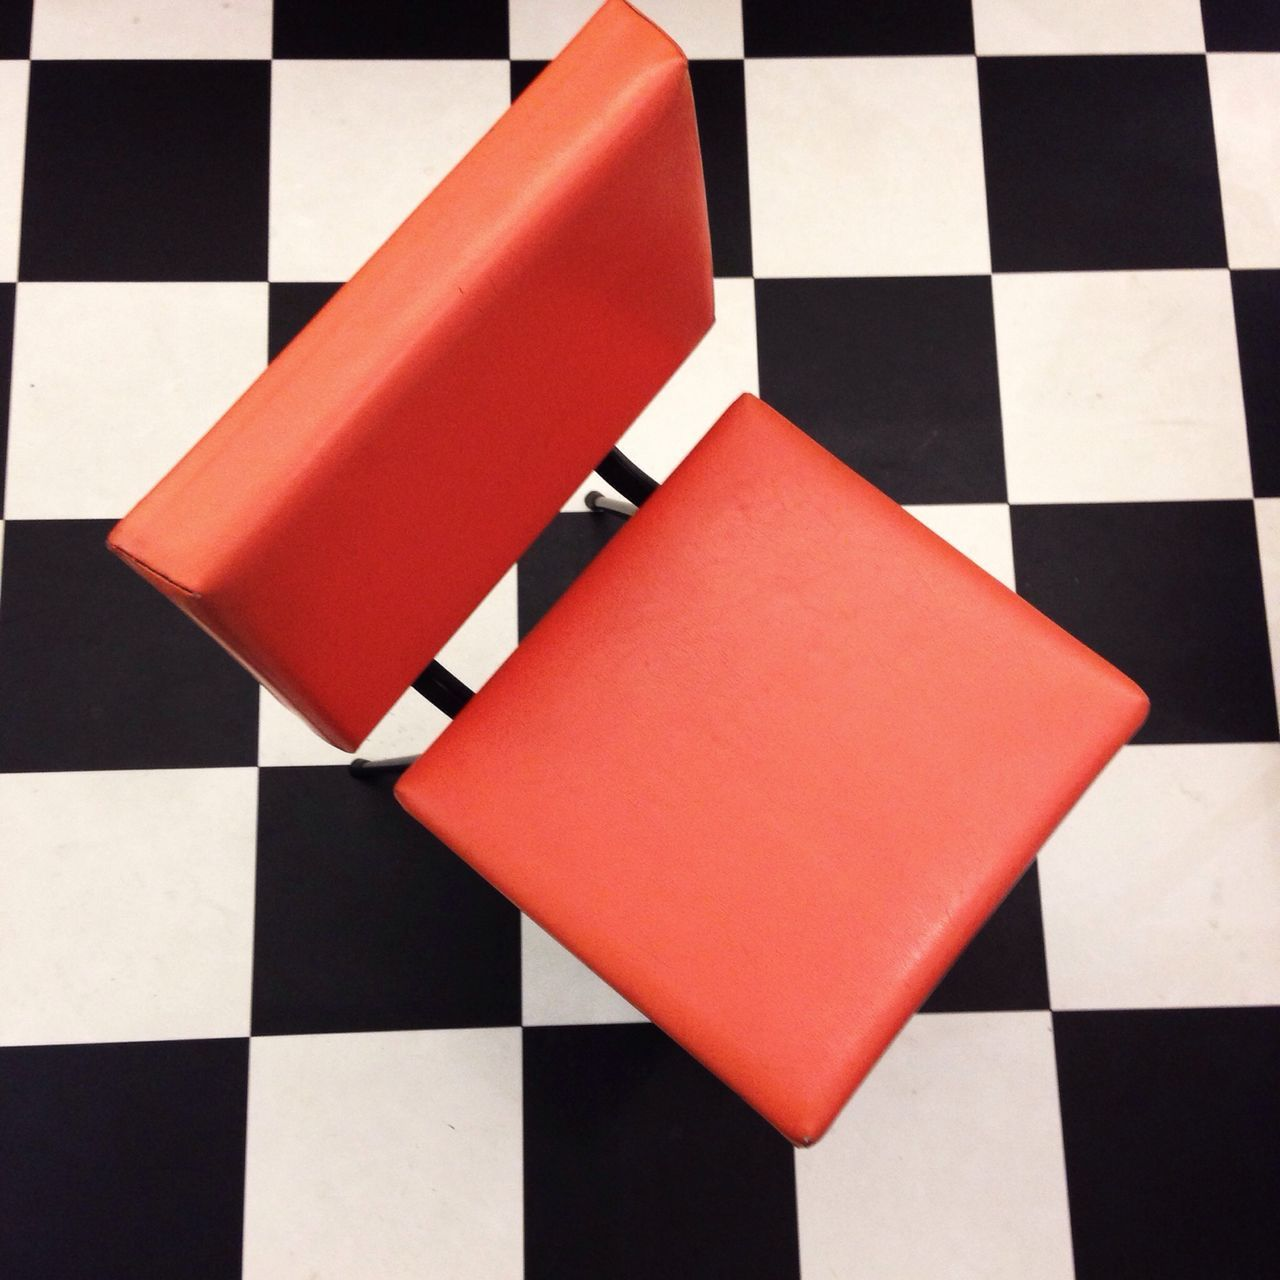 High angle view of orange chair on checkered floor